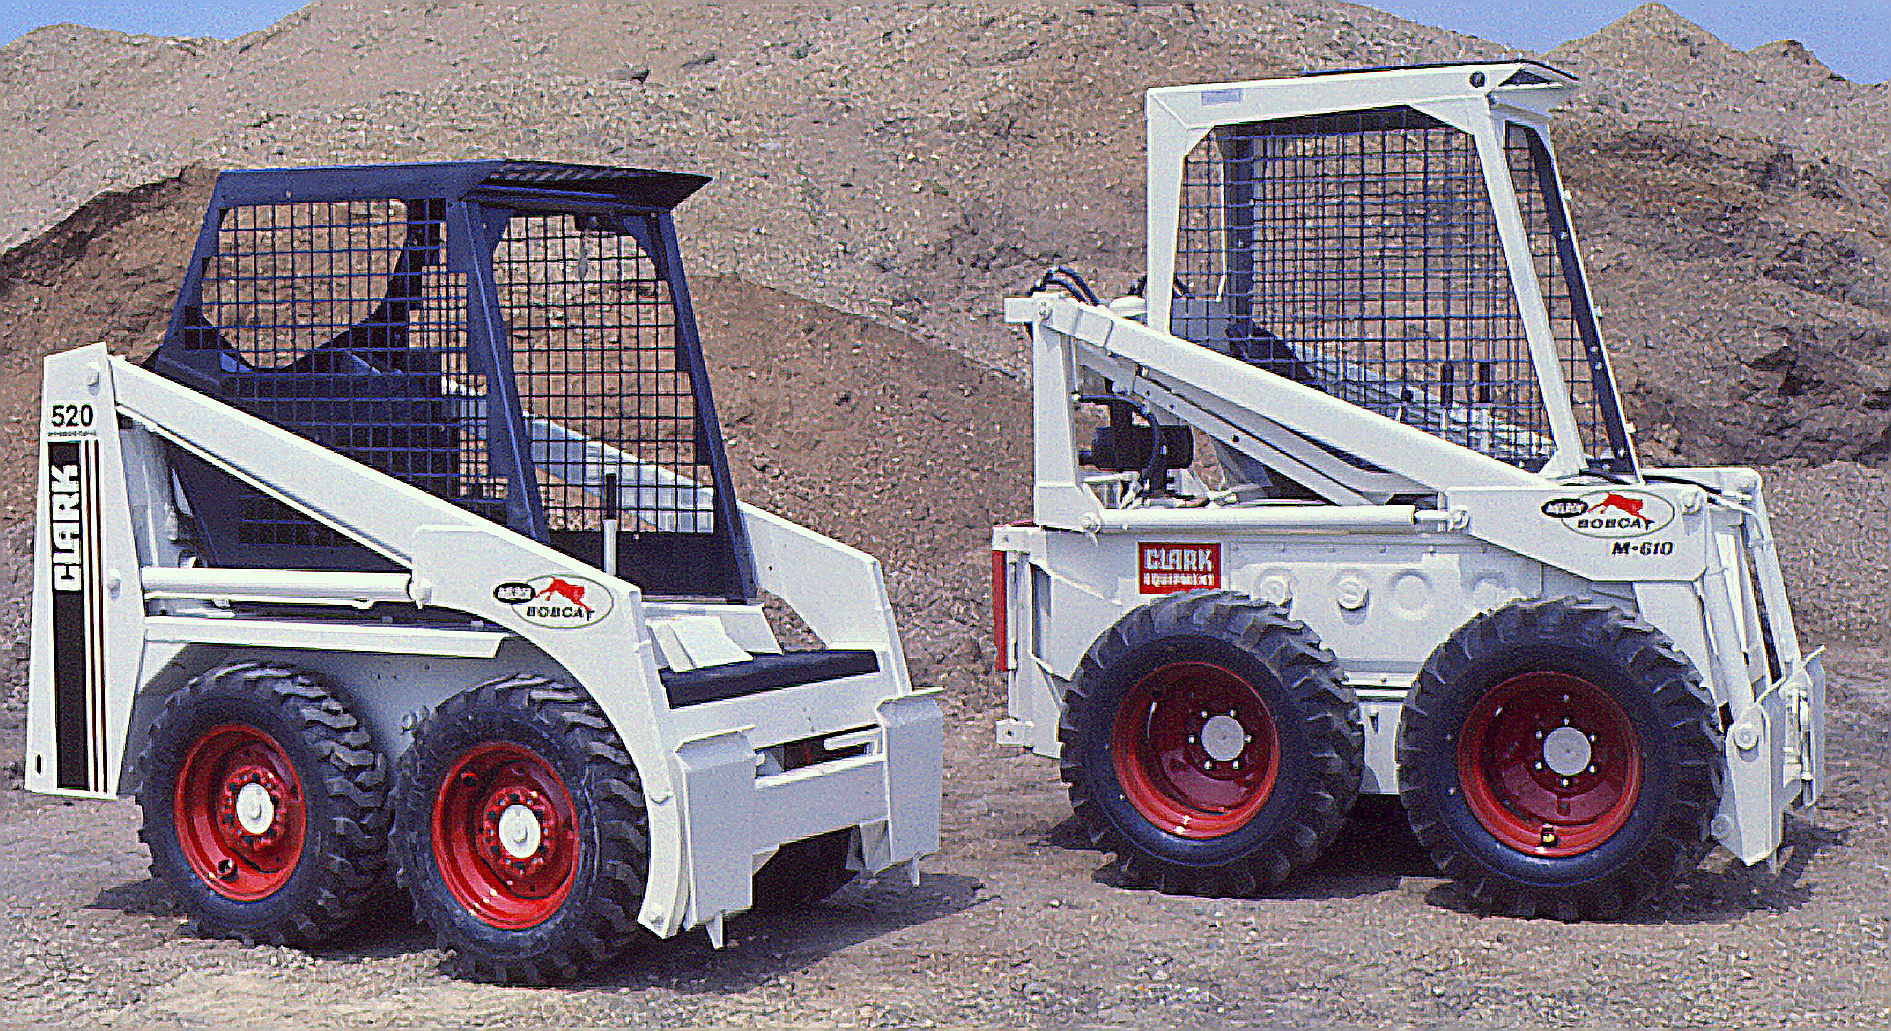 Wiring Diagram For Bobcat 610 Skid Steer | Wiring Library